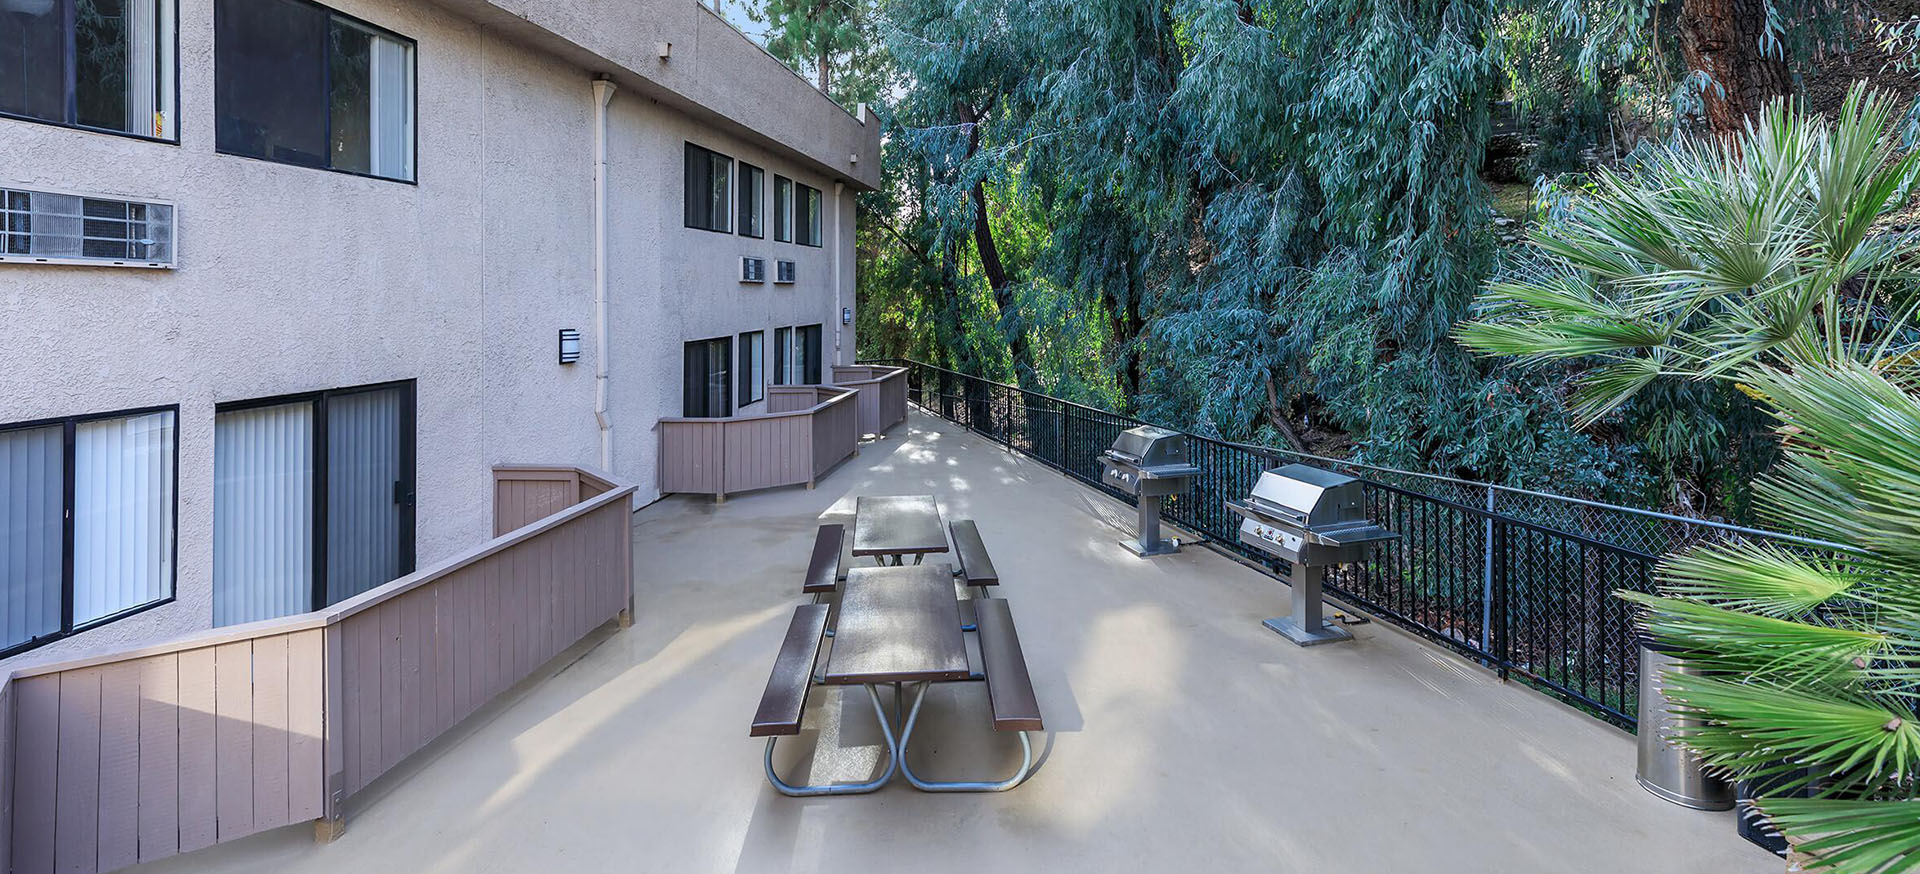 Pasadena Park Place - Apartments in Los Angeles, CA